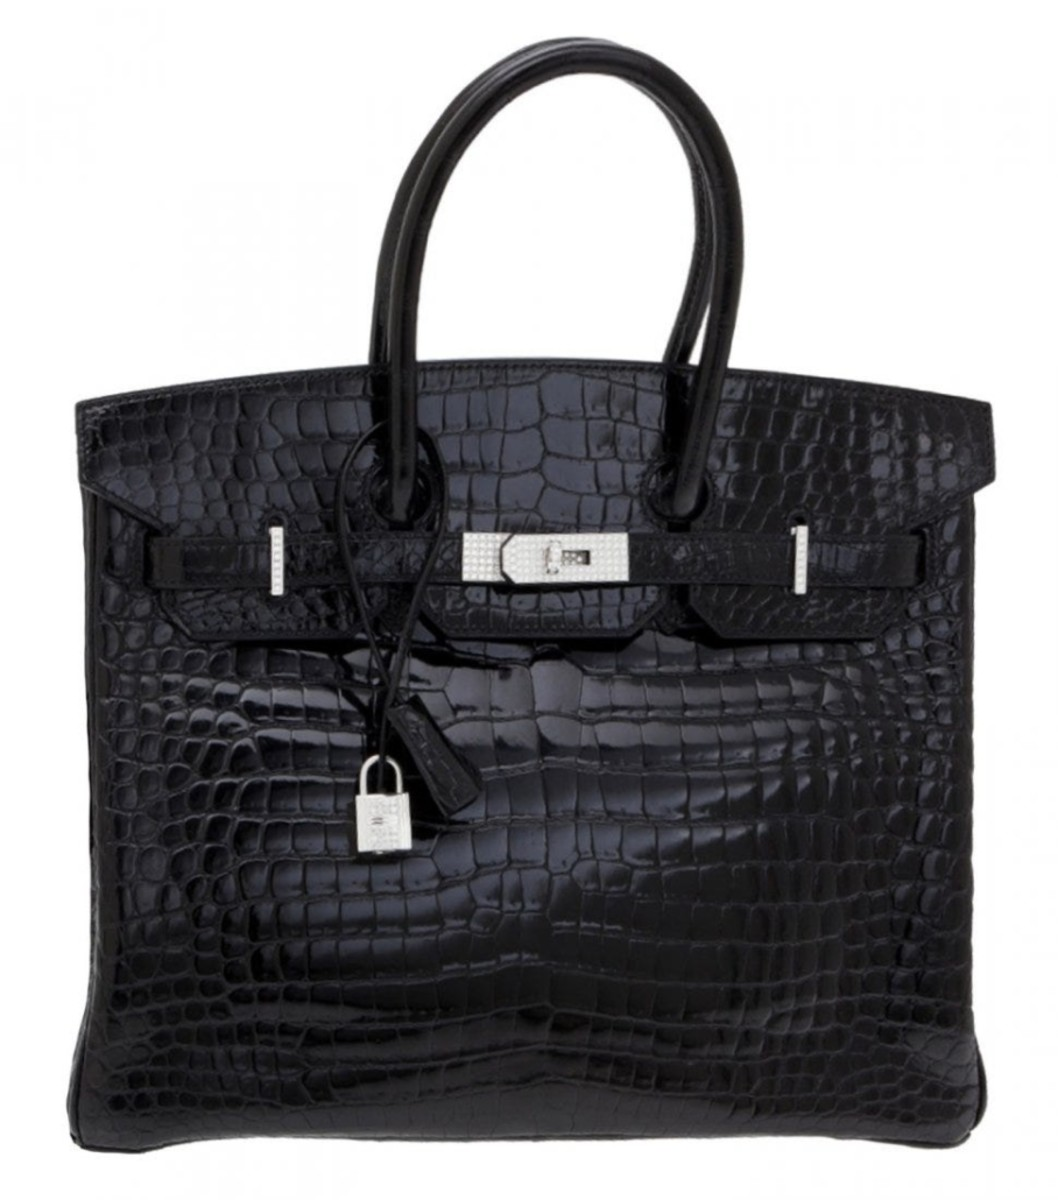 Hermès shiny black crocodile, diamond and white gold Birkin 35 handbag. Sold by Christie's through LiveAuctioneers for $287,500.